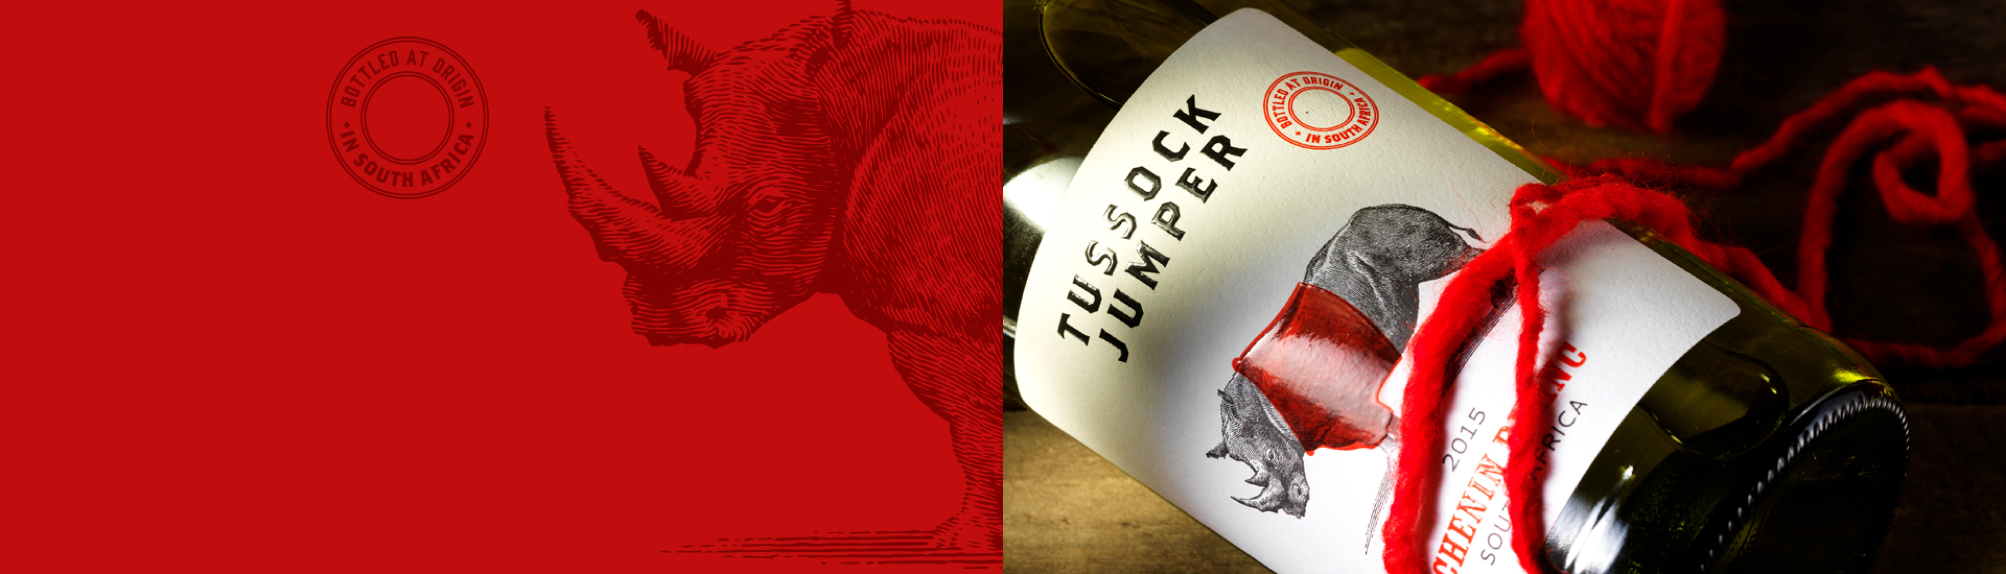 Tussock Jumper Wines - South Africa - Chenin Blanc